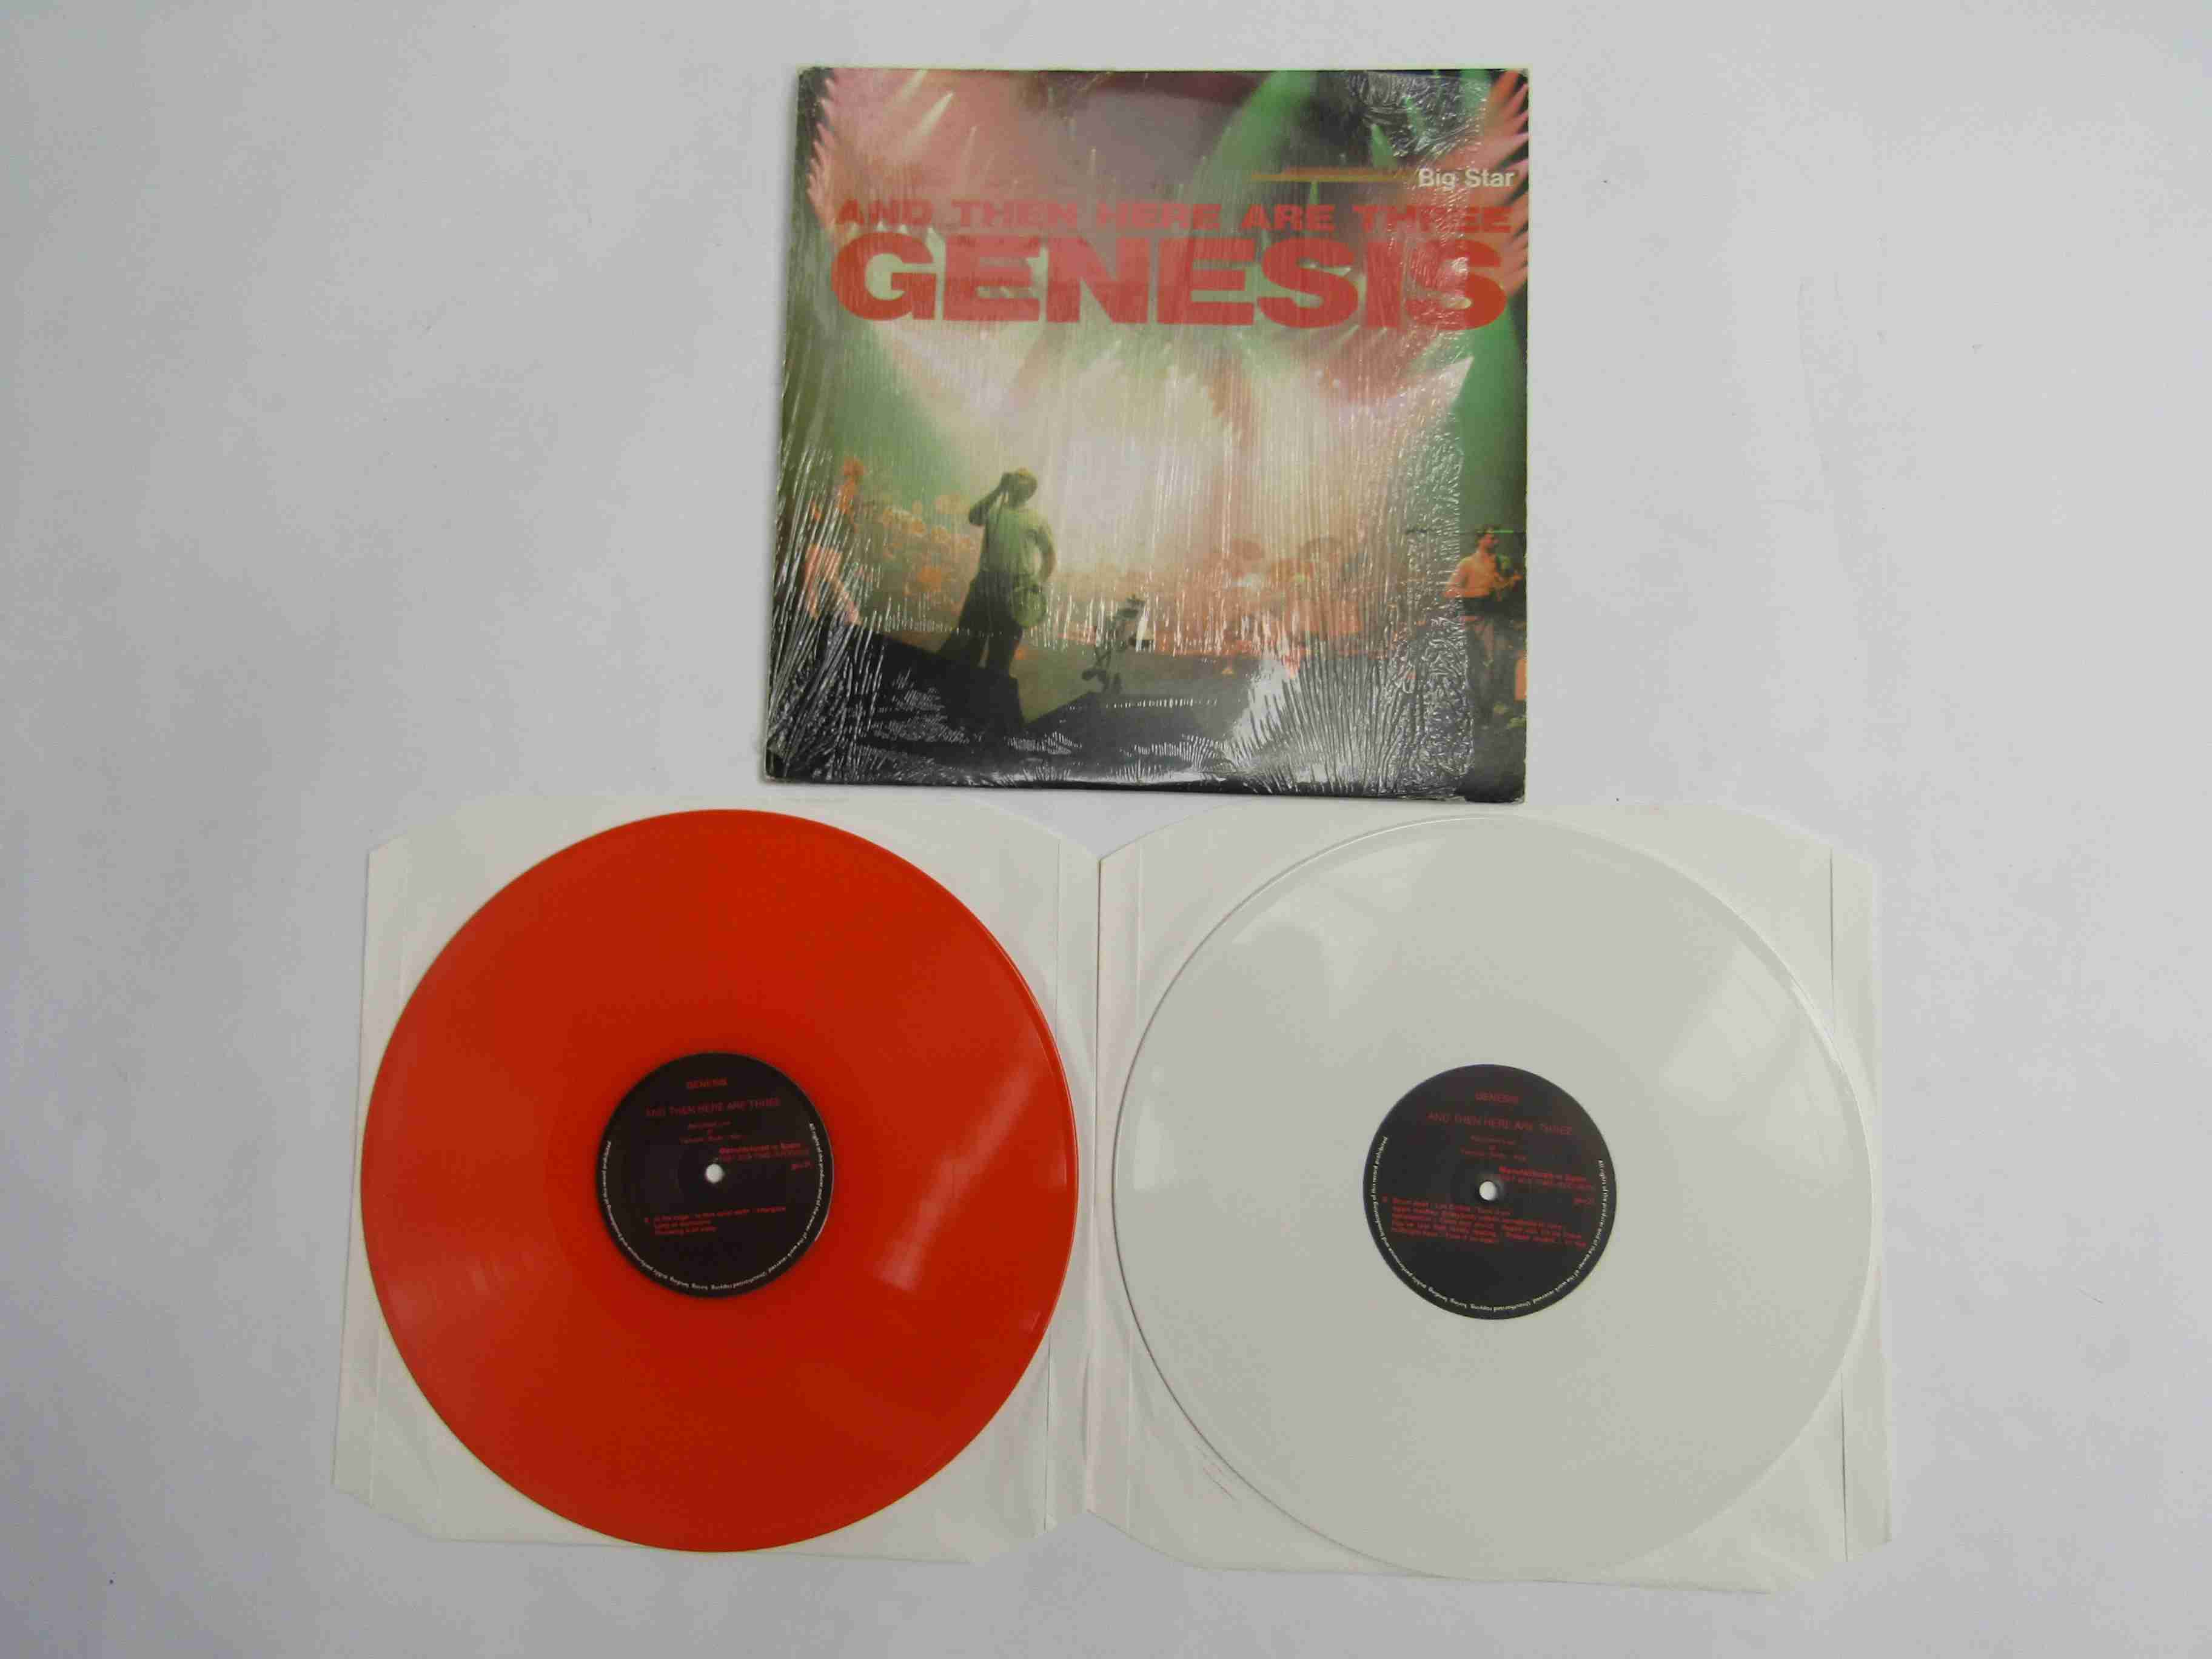 GENESIS: 'And Then Here Are Three 2xLP unofficial release on orange and white vinyl (media and